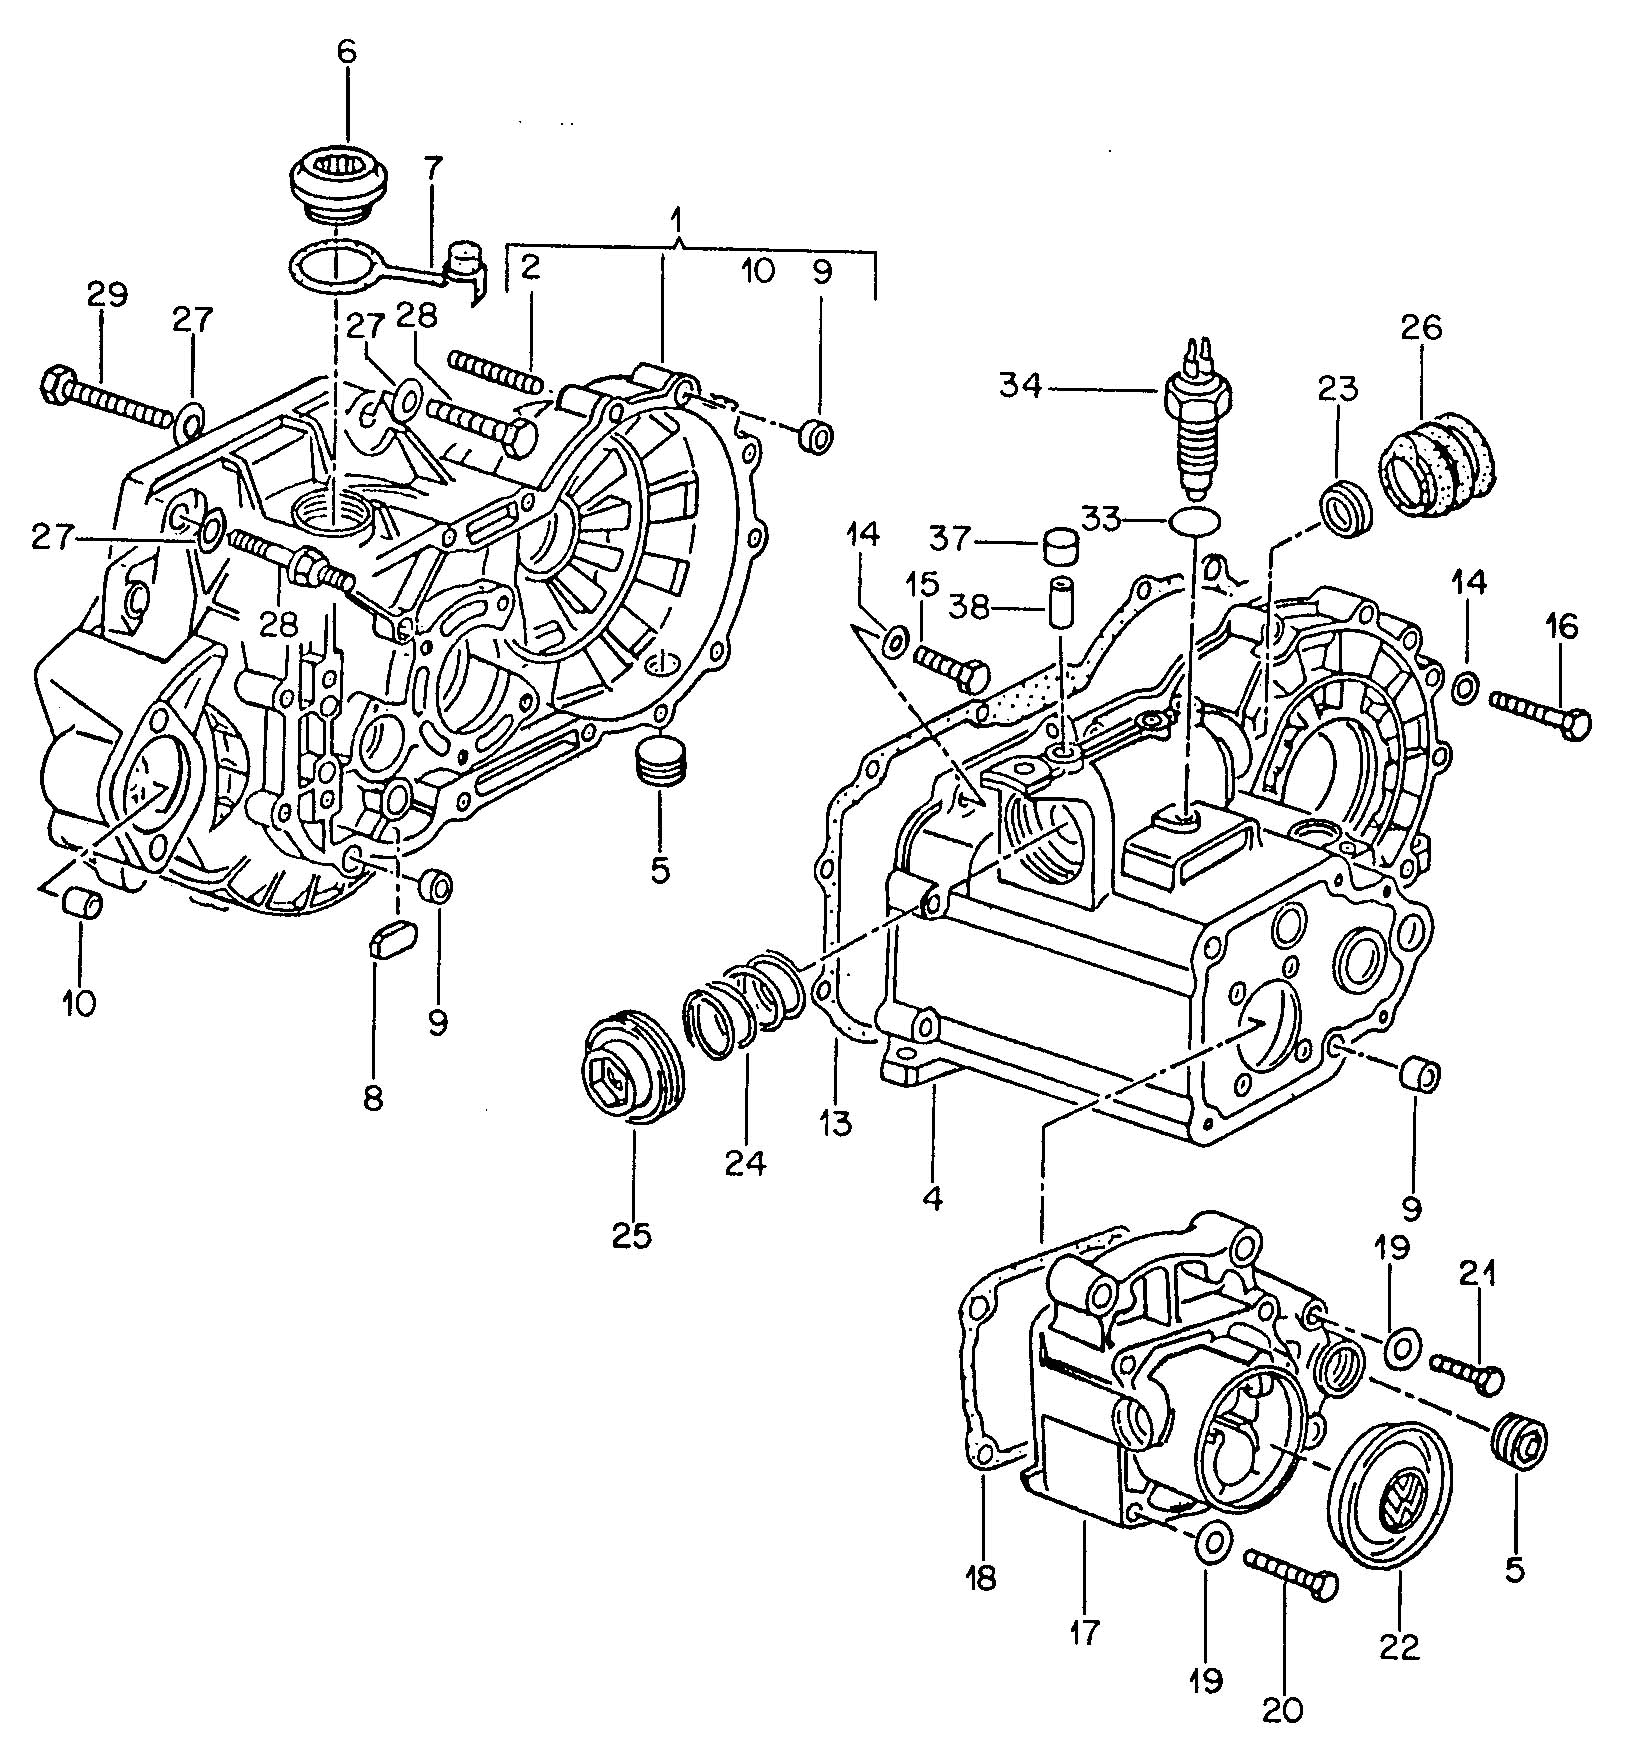 Diagram Vw Jetta Manual Transmission Diagram Full